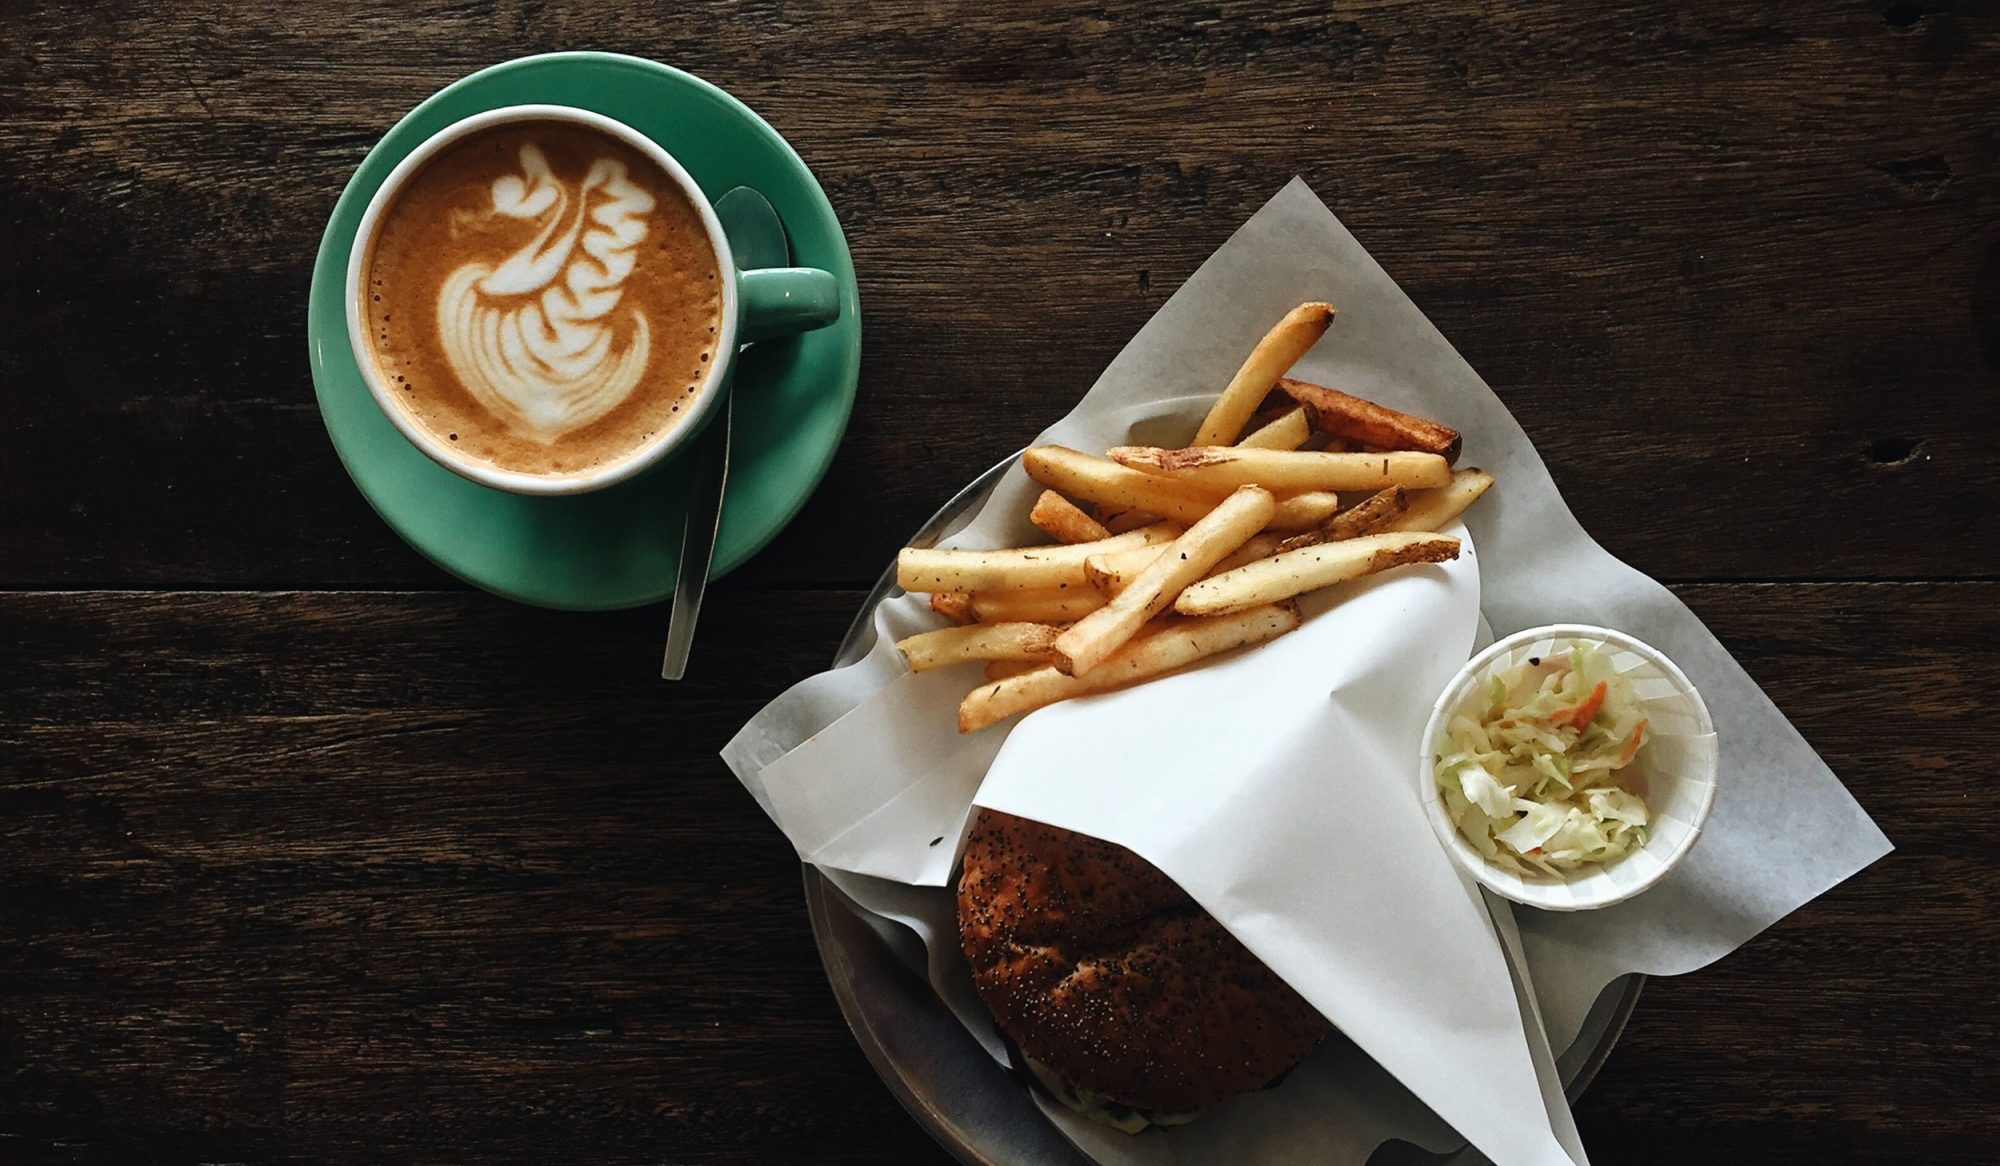 EC: Coffee and Potatoes Taste Good Together, According to Science